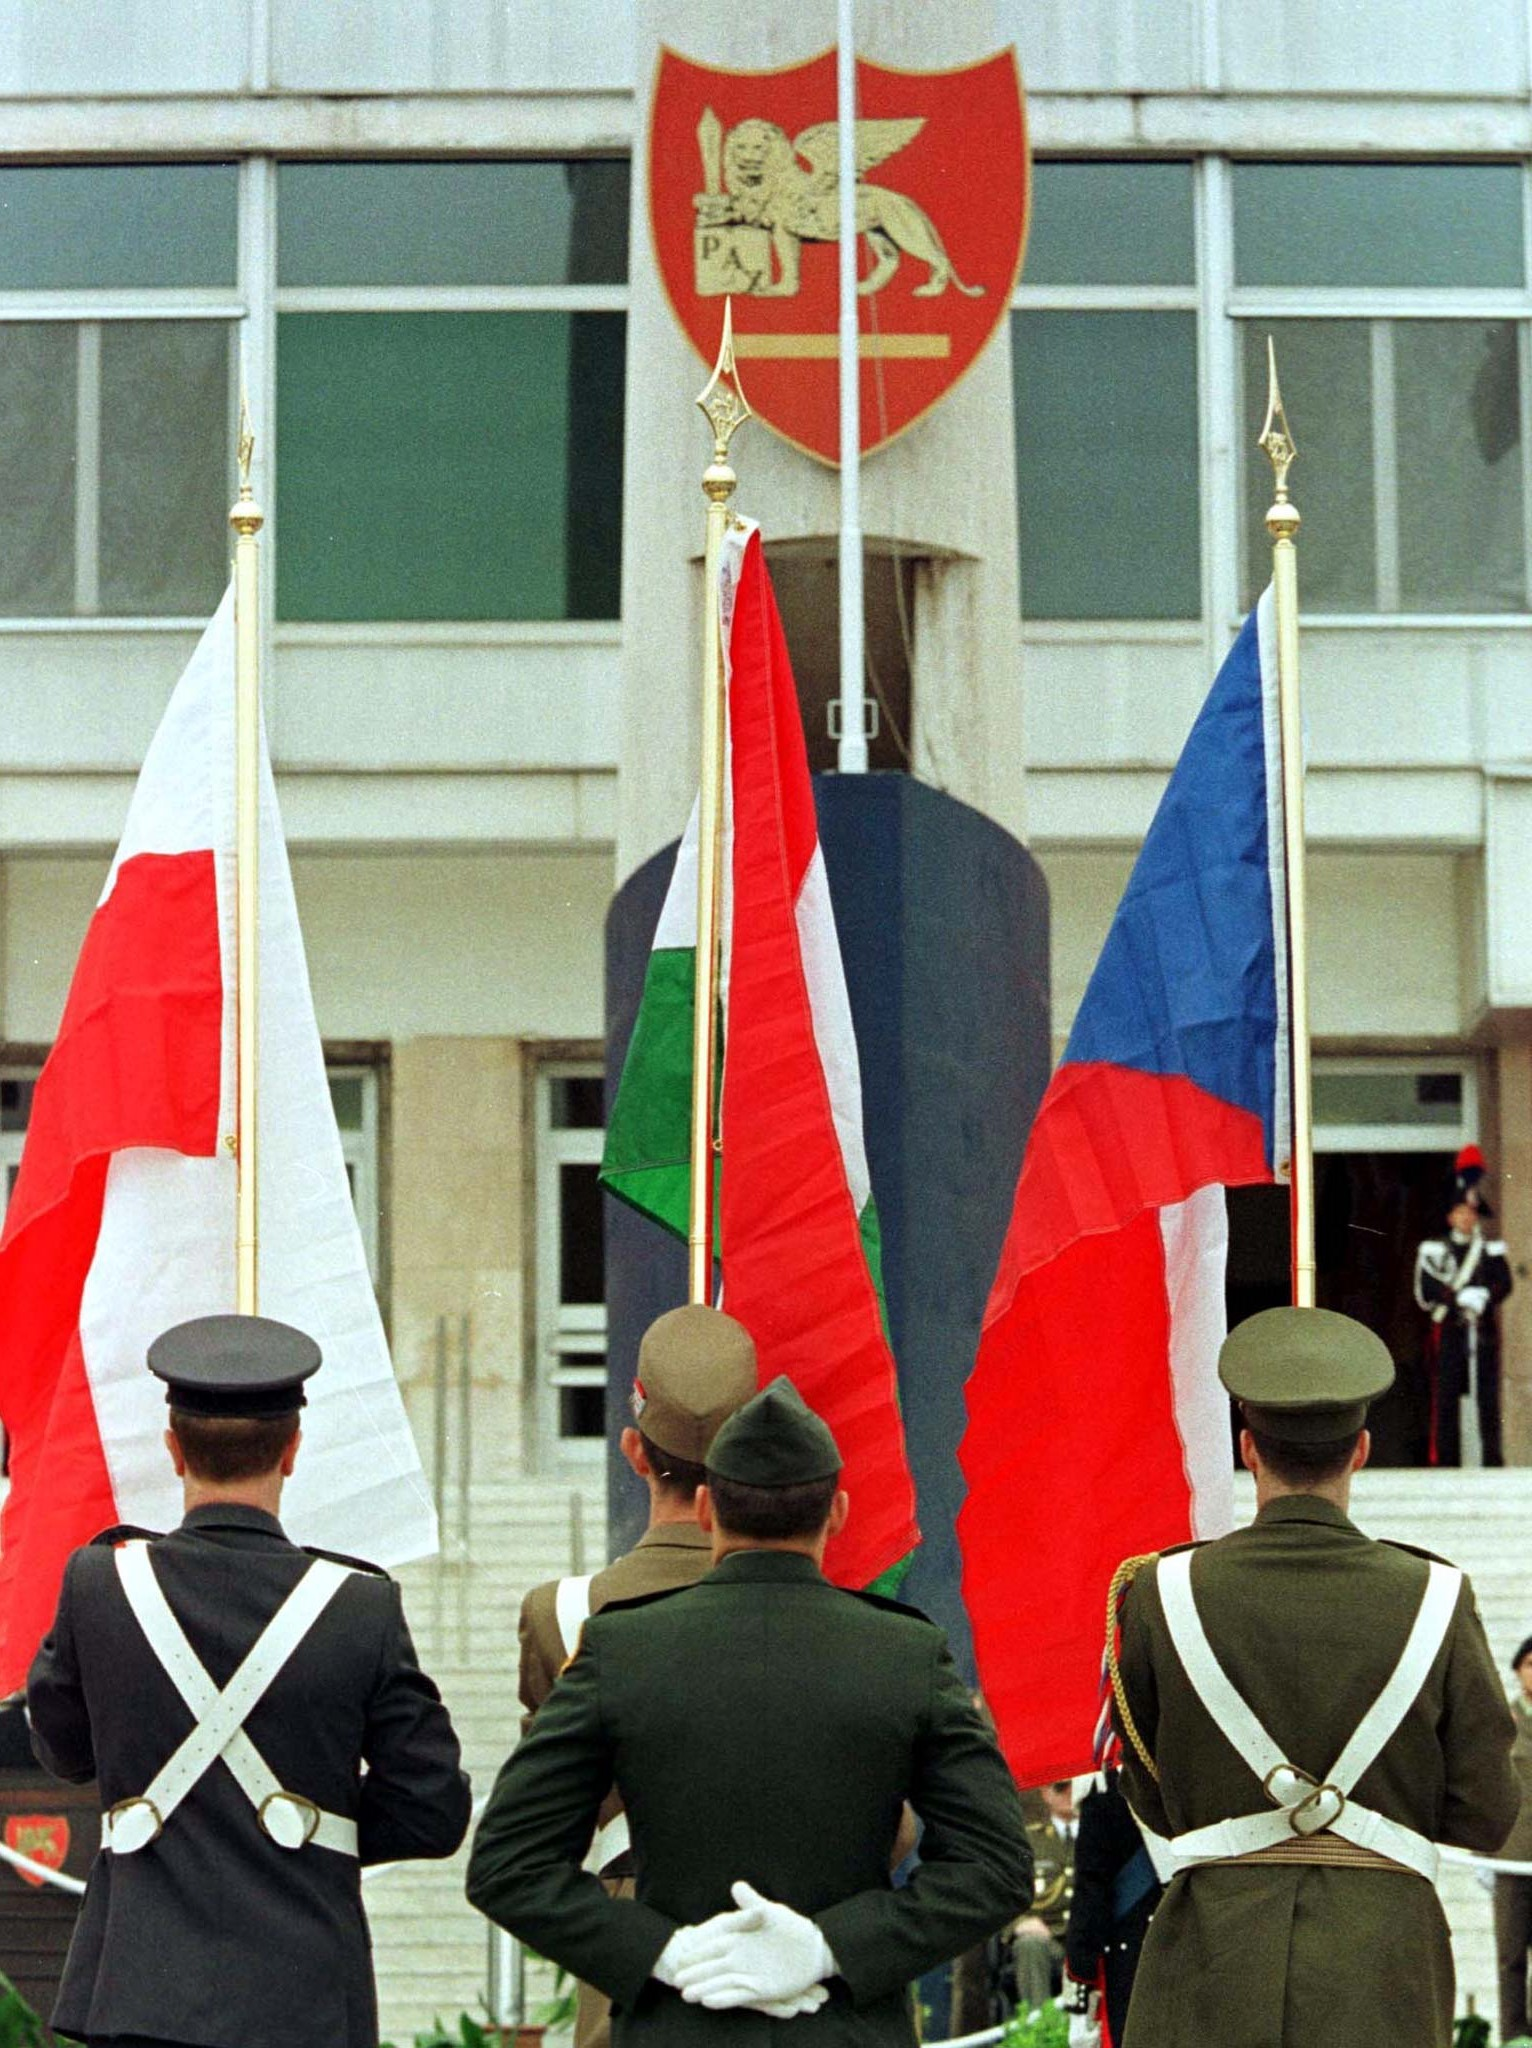 soldiers in front of flags of Eastern Europe